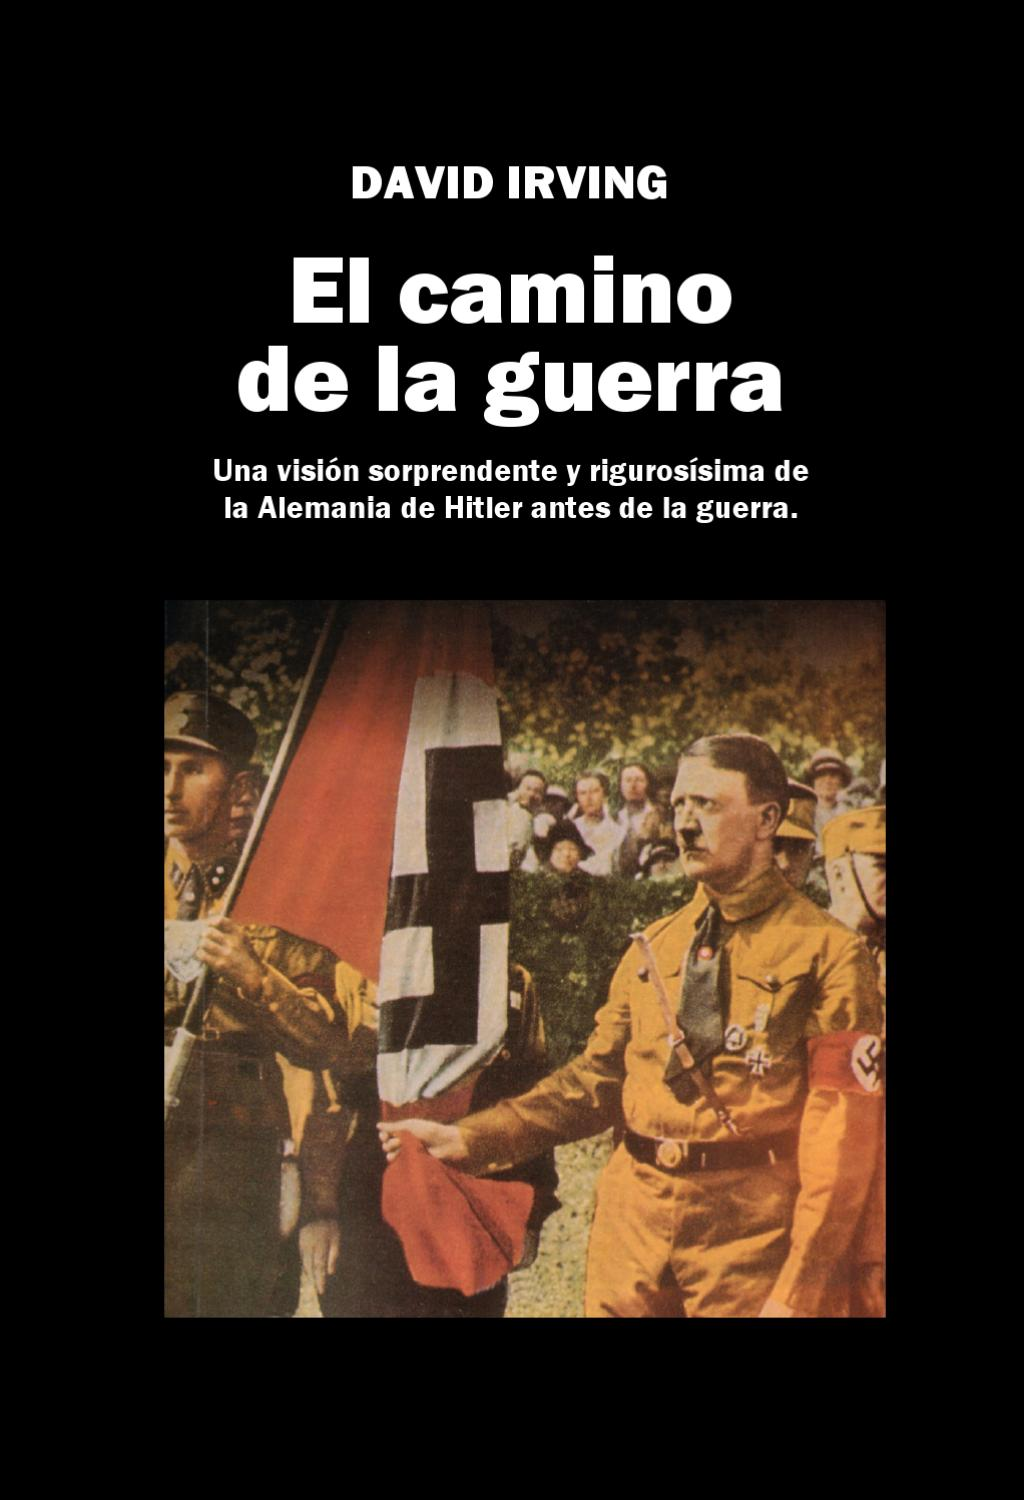 El Camino de la Guerra by Editorial Fascinacion - issuu